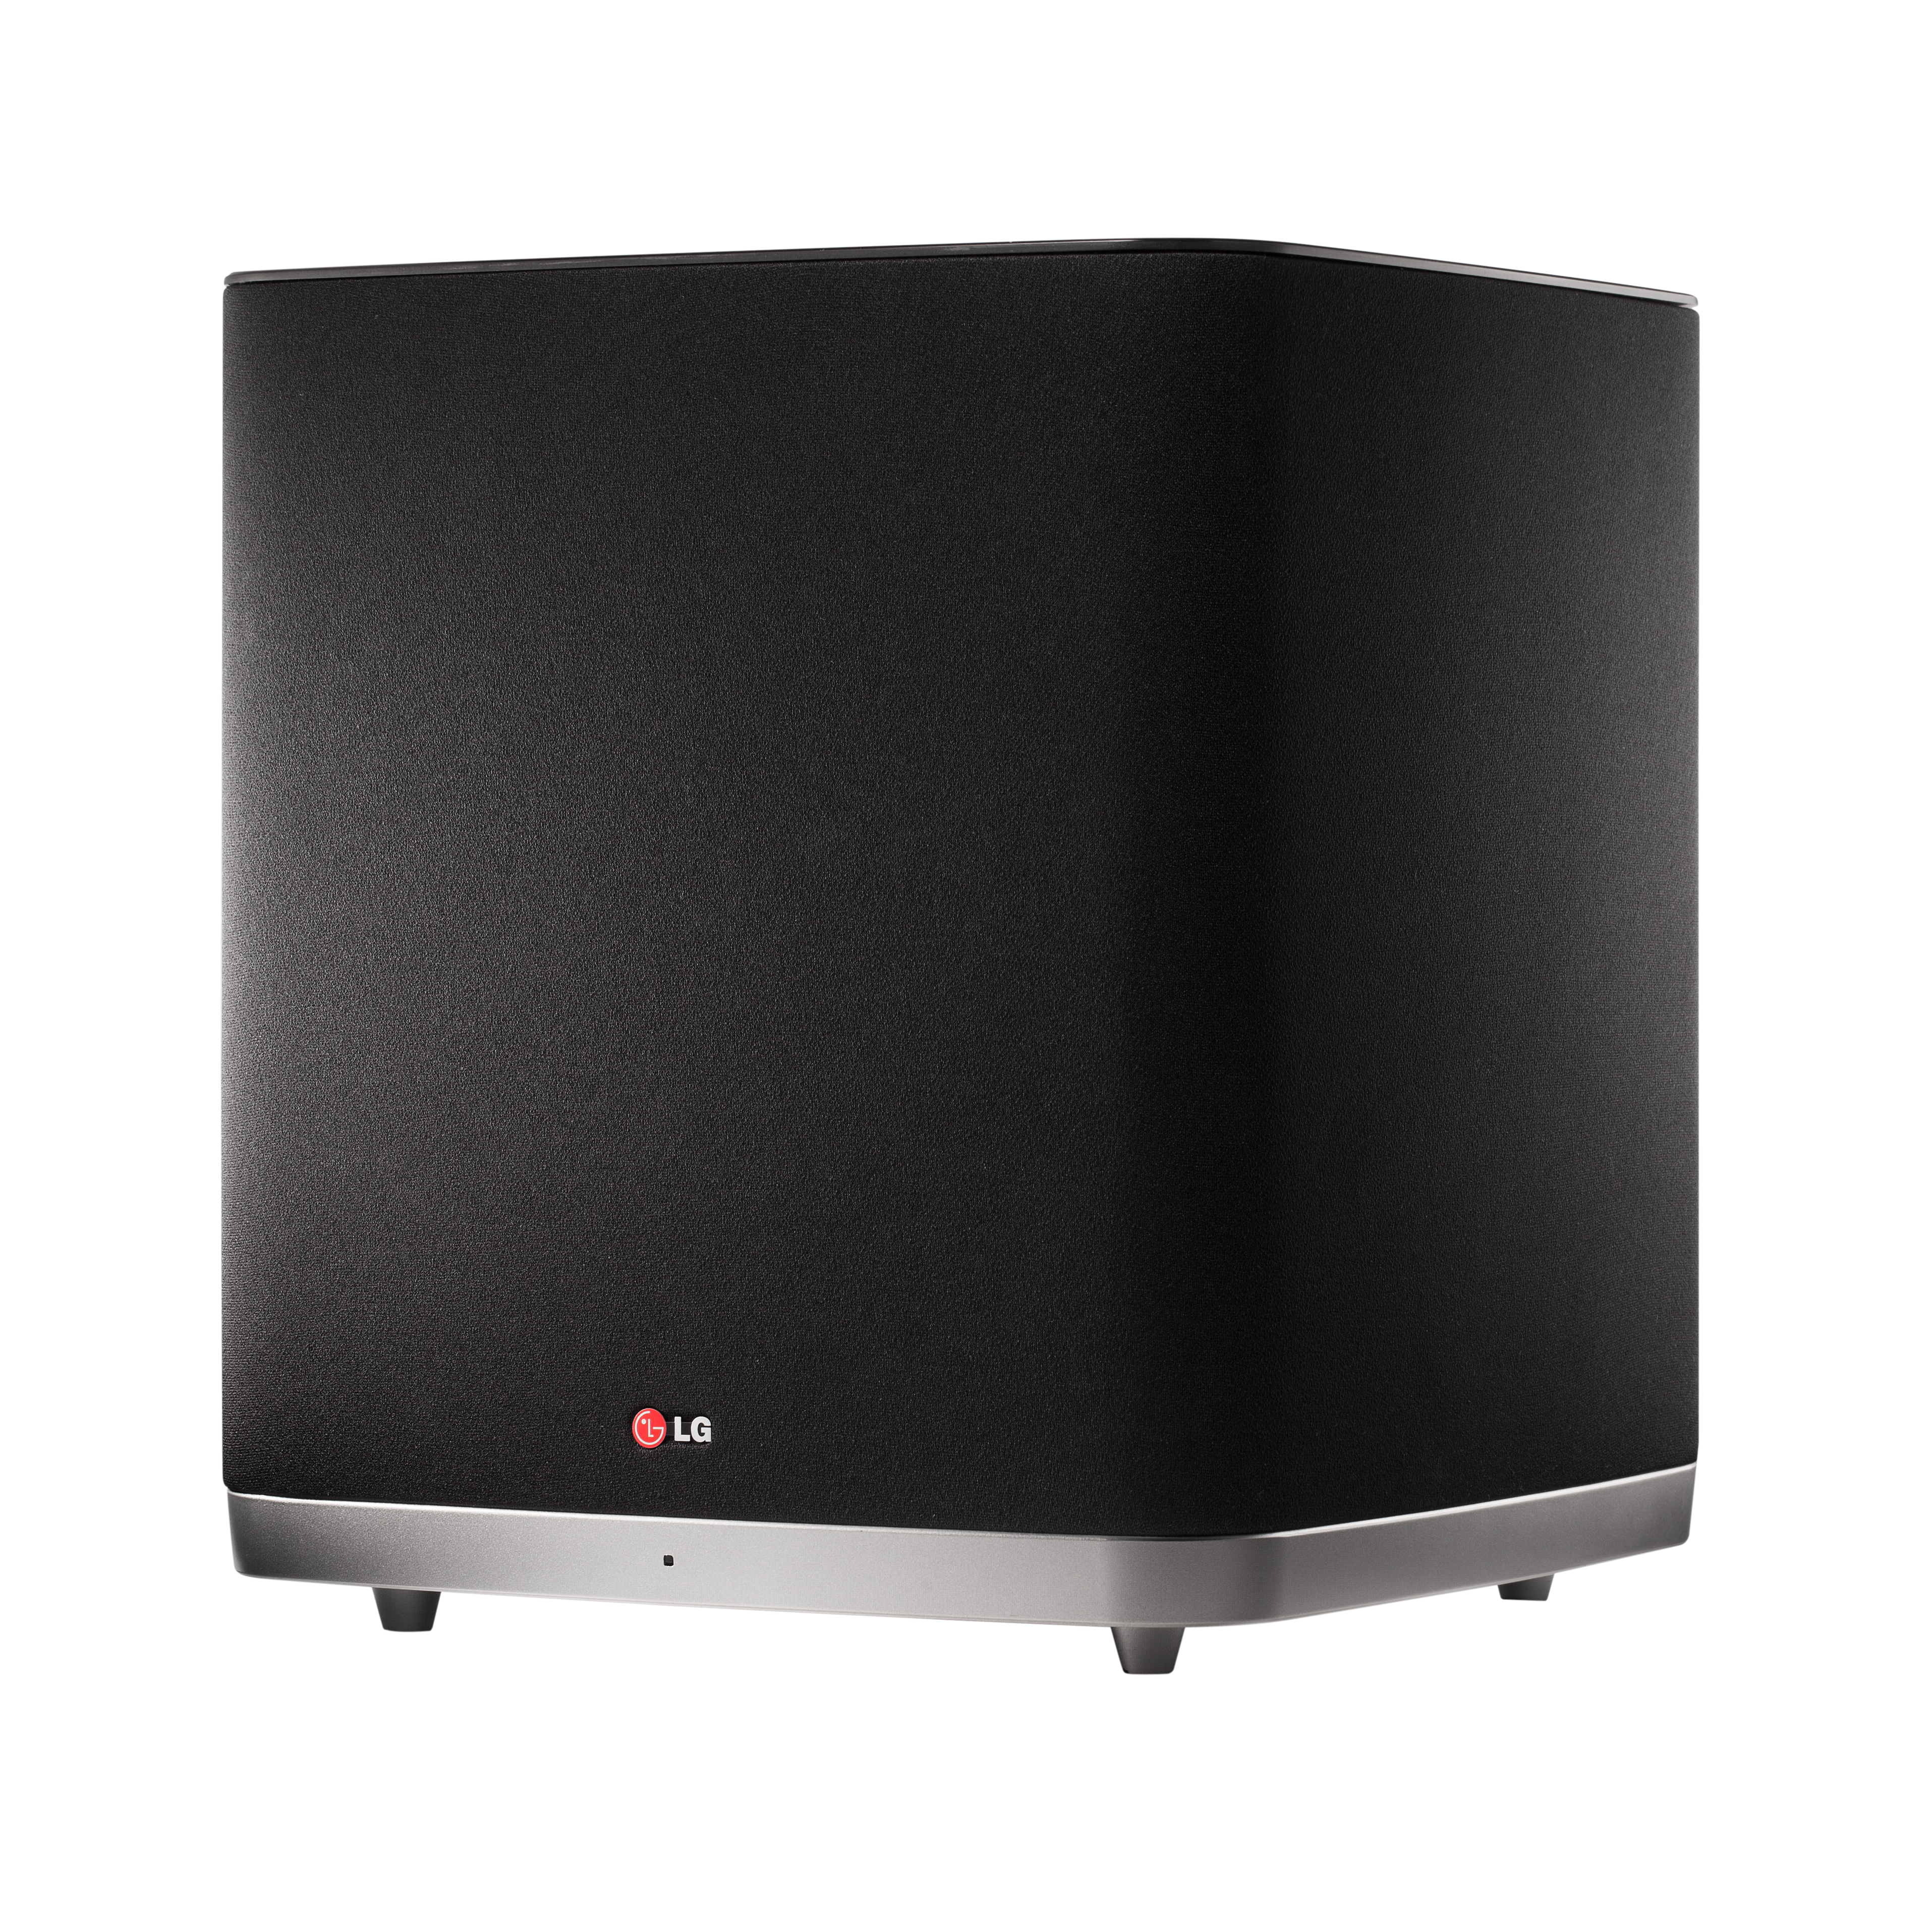 A subwoofer for the LG Sound Bar NB5540